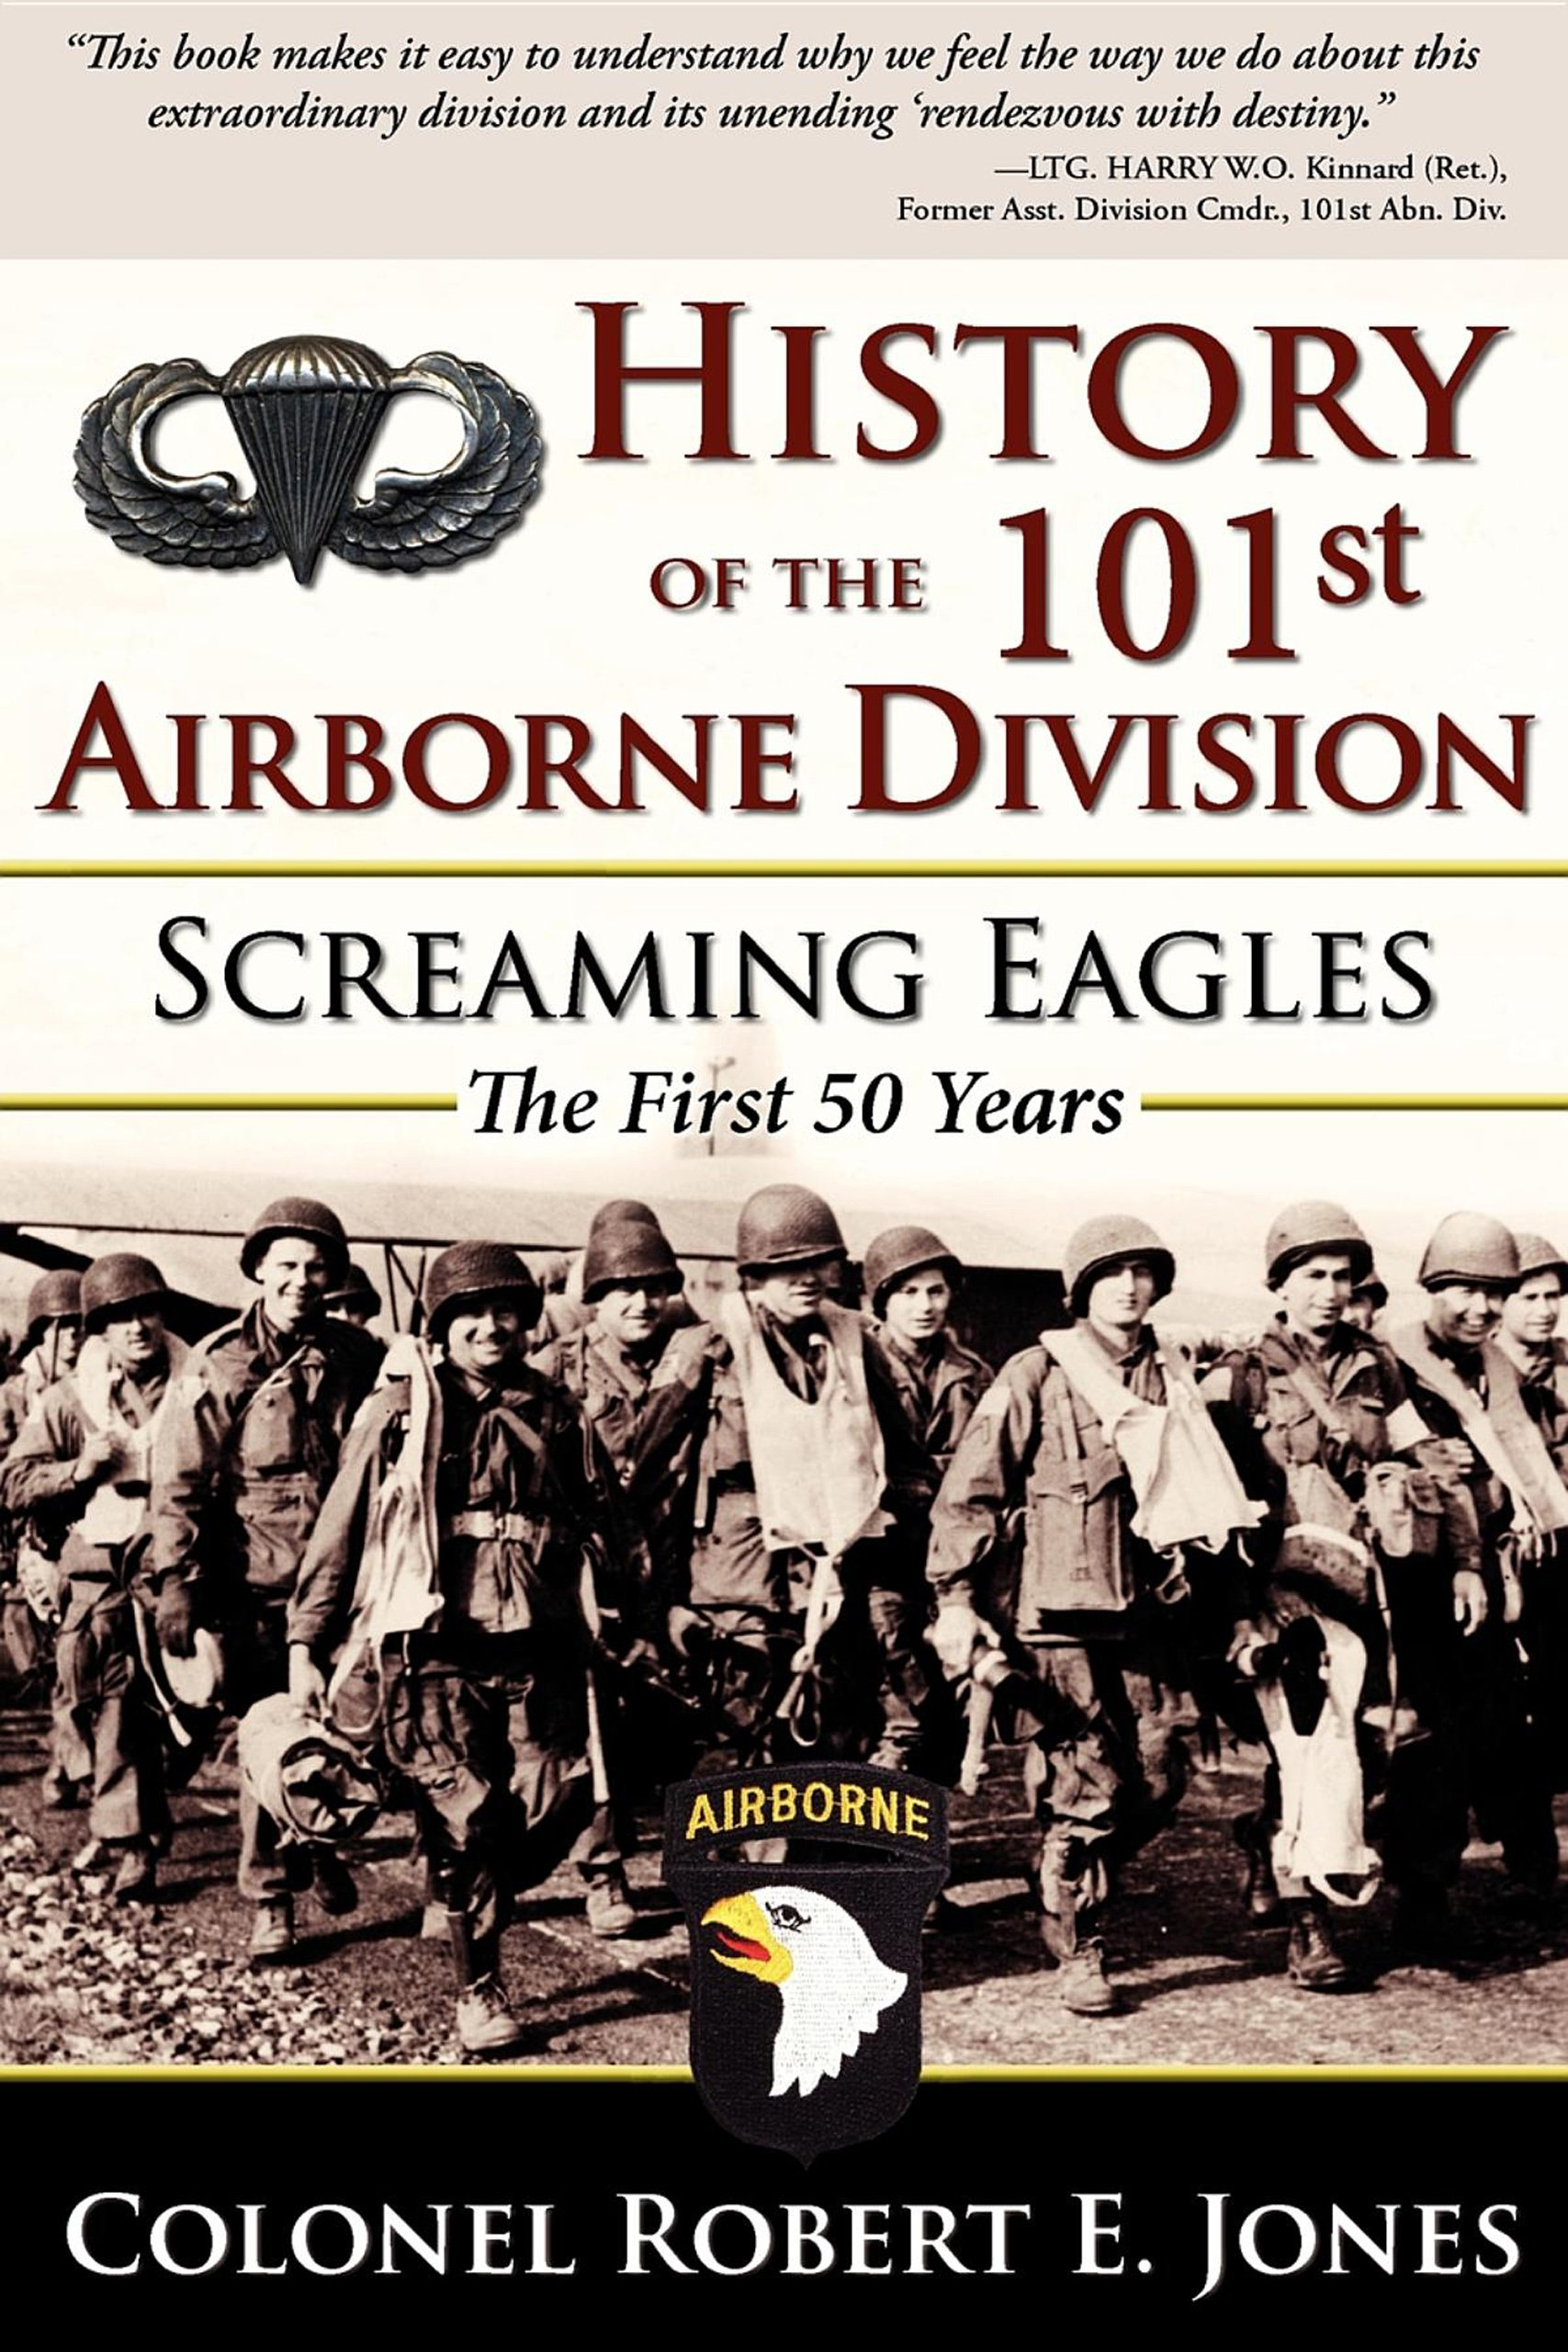 History of the 101st Airborne Division: Screaming Eagles